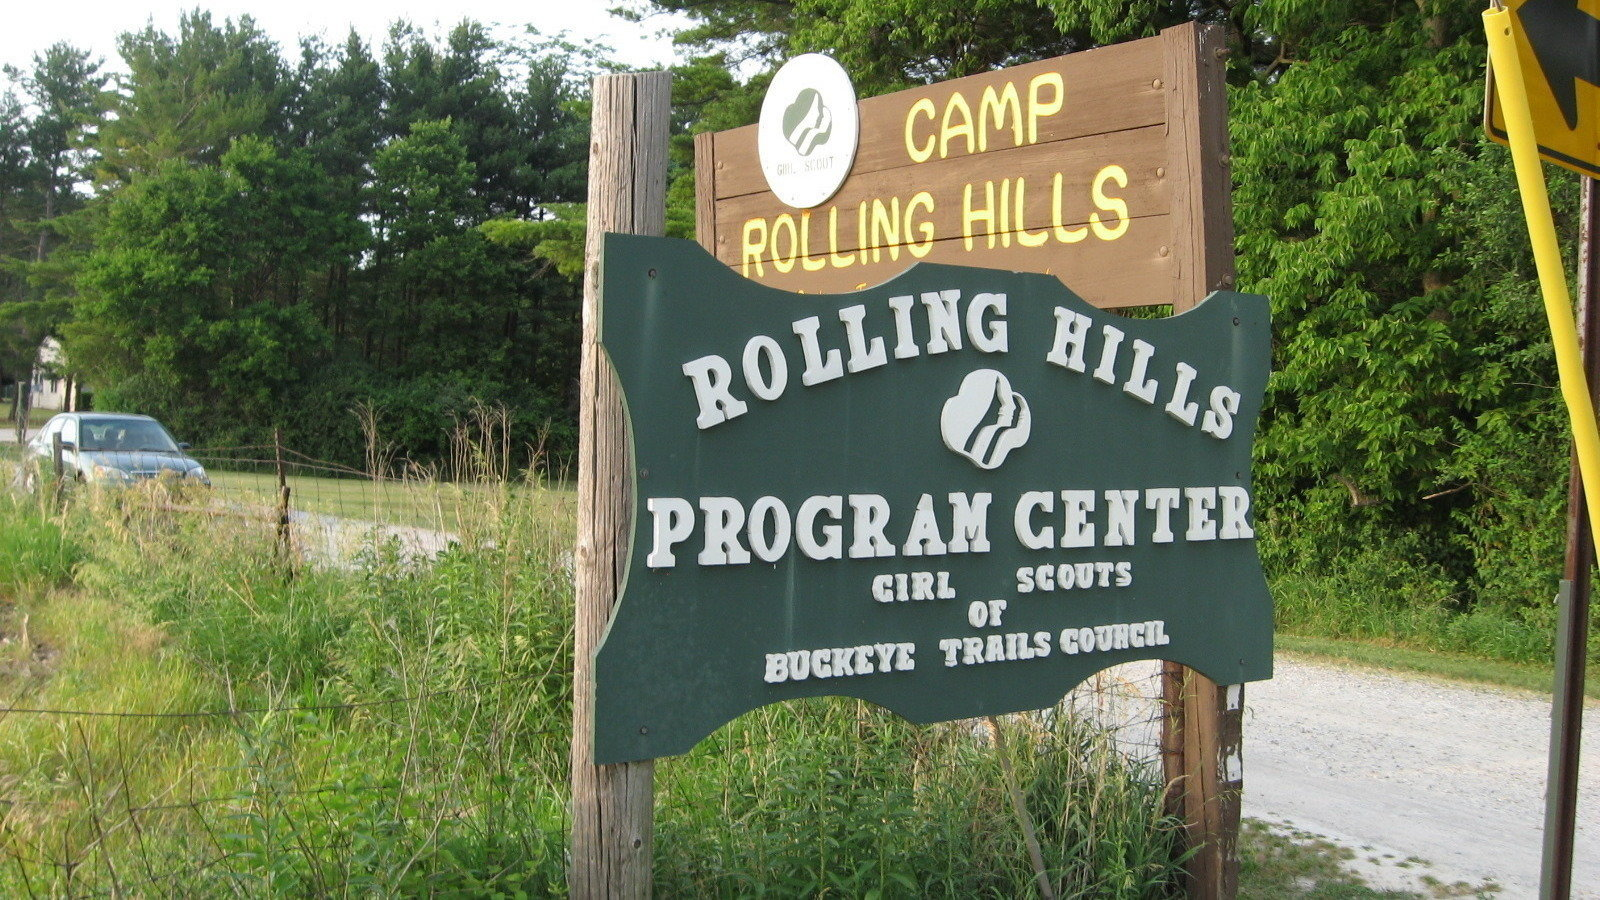 petition save girl scout camp rolling hills from